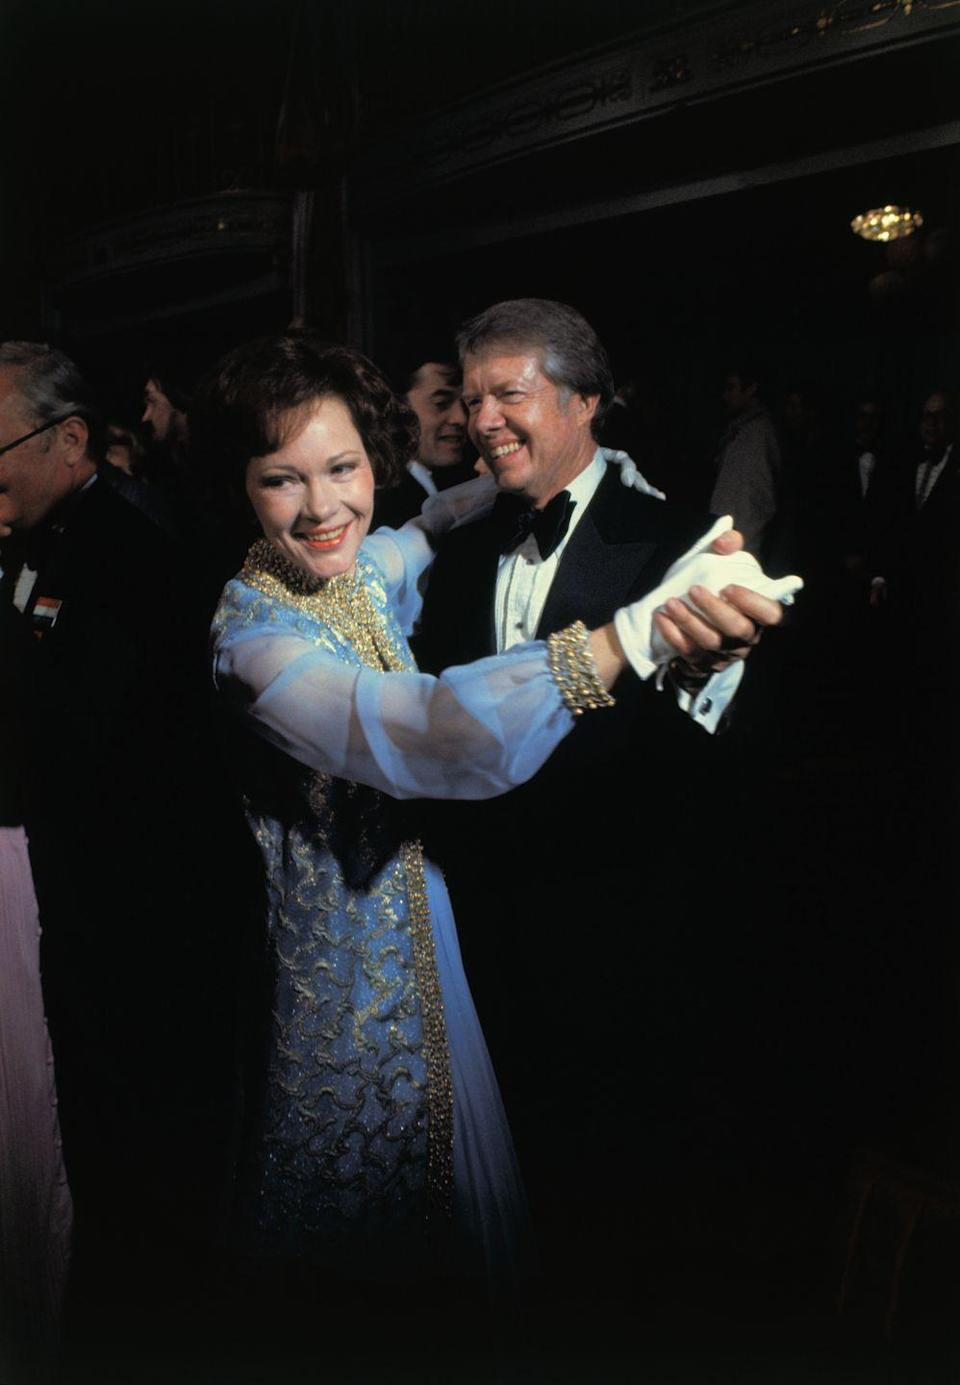 """<p>The couple share a dance at the inaugural ball in 1977. Rosalynn Carter wears an elaborate blue chiffon evening gown with gold brocade detailing. Her dress and jacket were <a href=""""https://americanhistory.si.edu/first-ladies/rosalynn-carter"""" rel=""""nofollow noopener"""" target=""""_blank"""" data-ylk=""""slk:designed by Mary Matise for Jimmae"""" class=""""link rapid-noclick-resp"""">designed by Mary Matise for Jimmae</a>. </p>"""